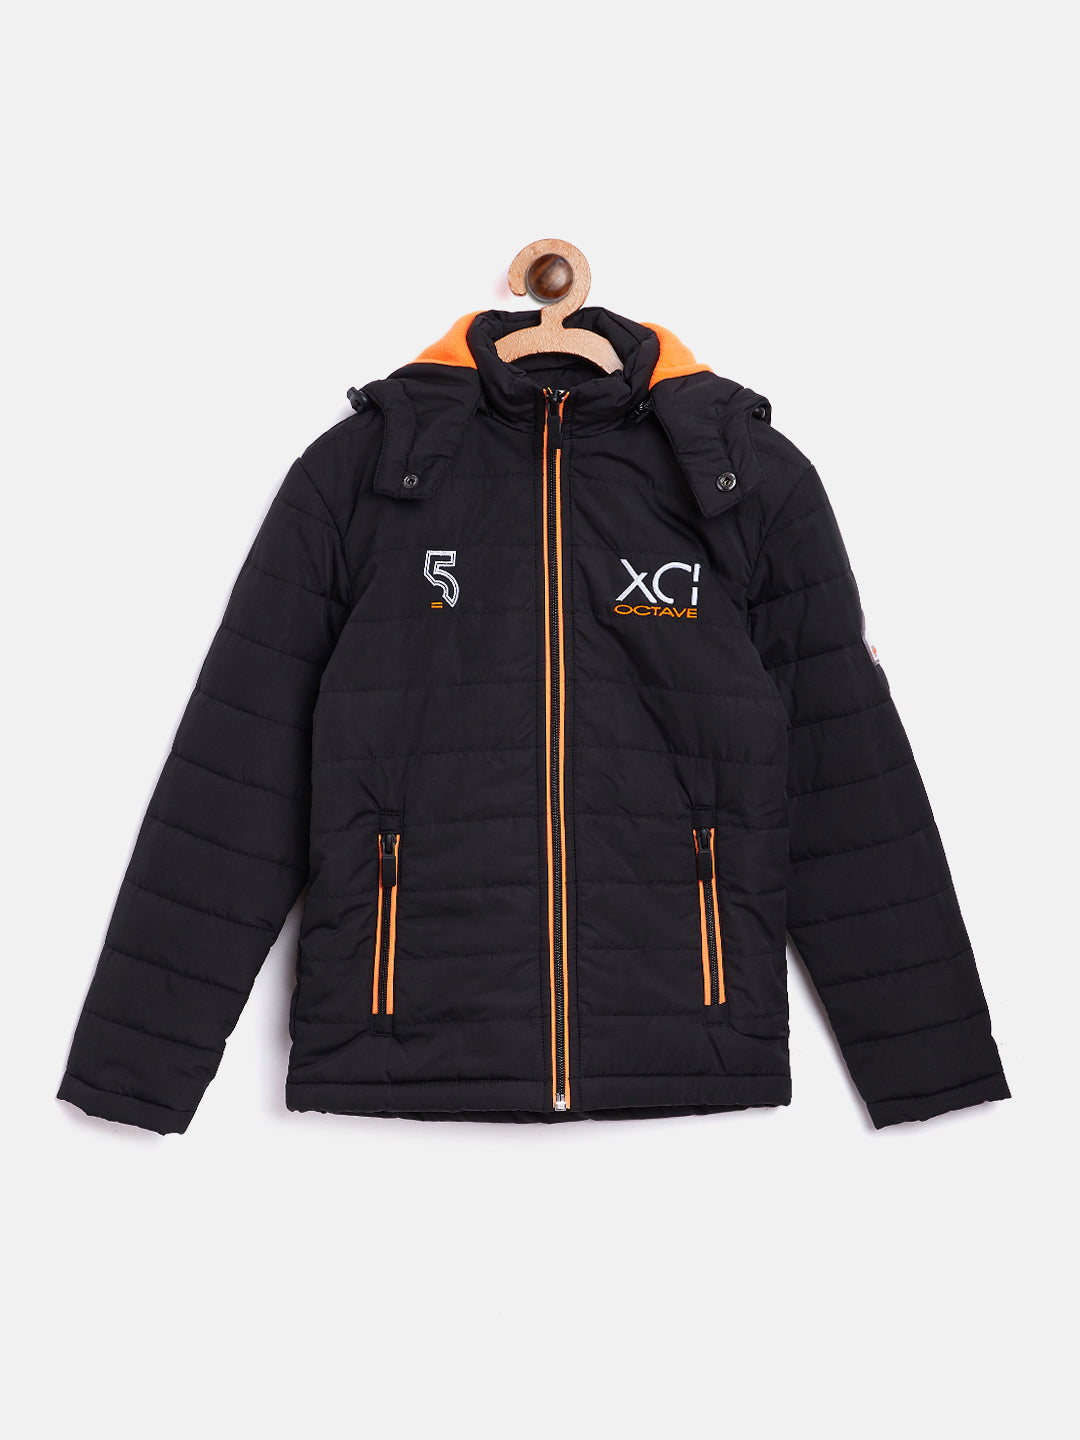 Octave Apparels Black Jacket For Kids